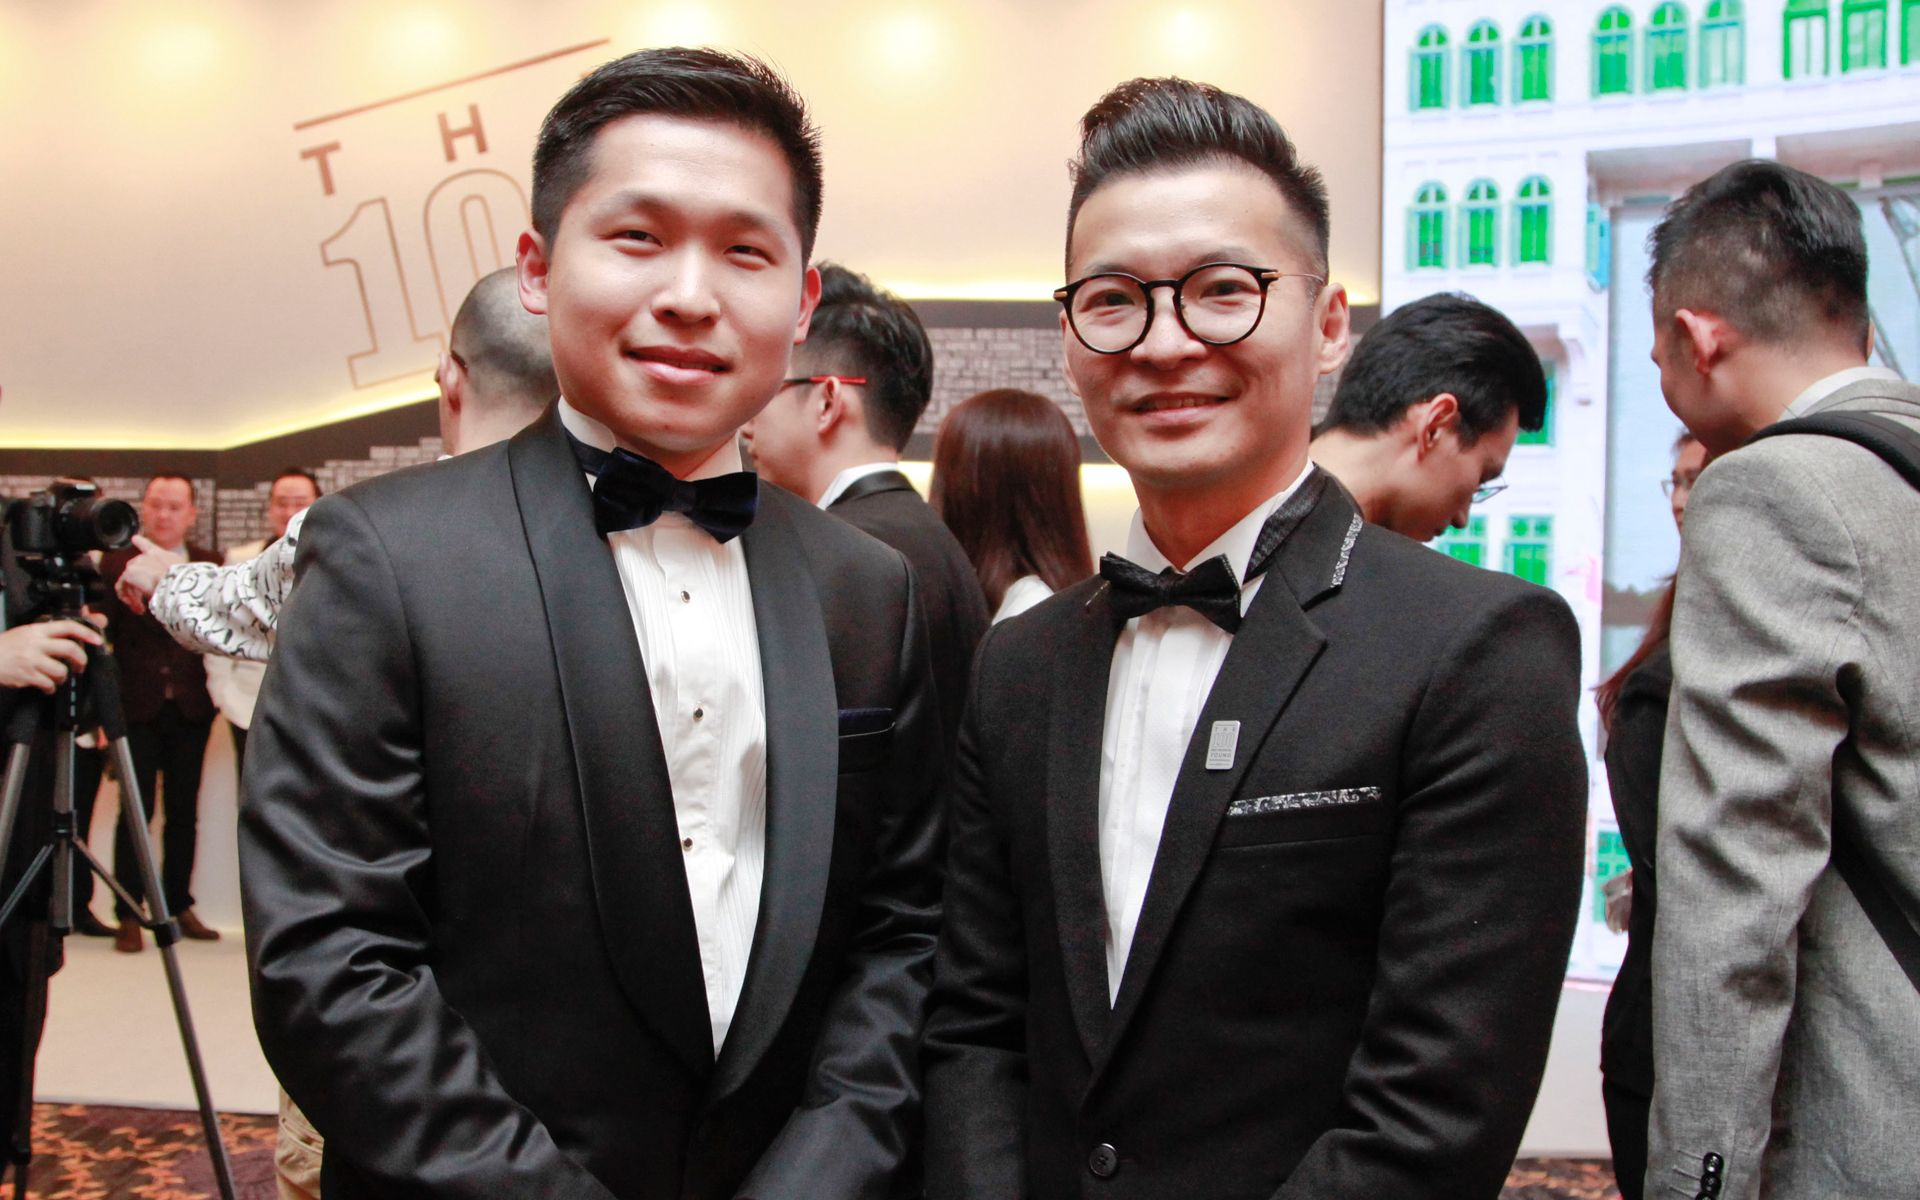 William Tang Chee Weng and Yiewin Kang